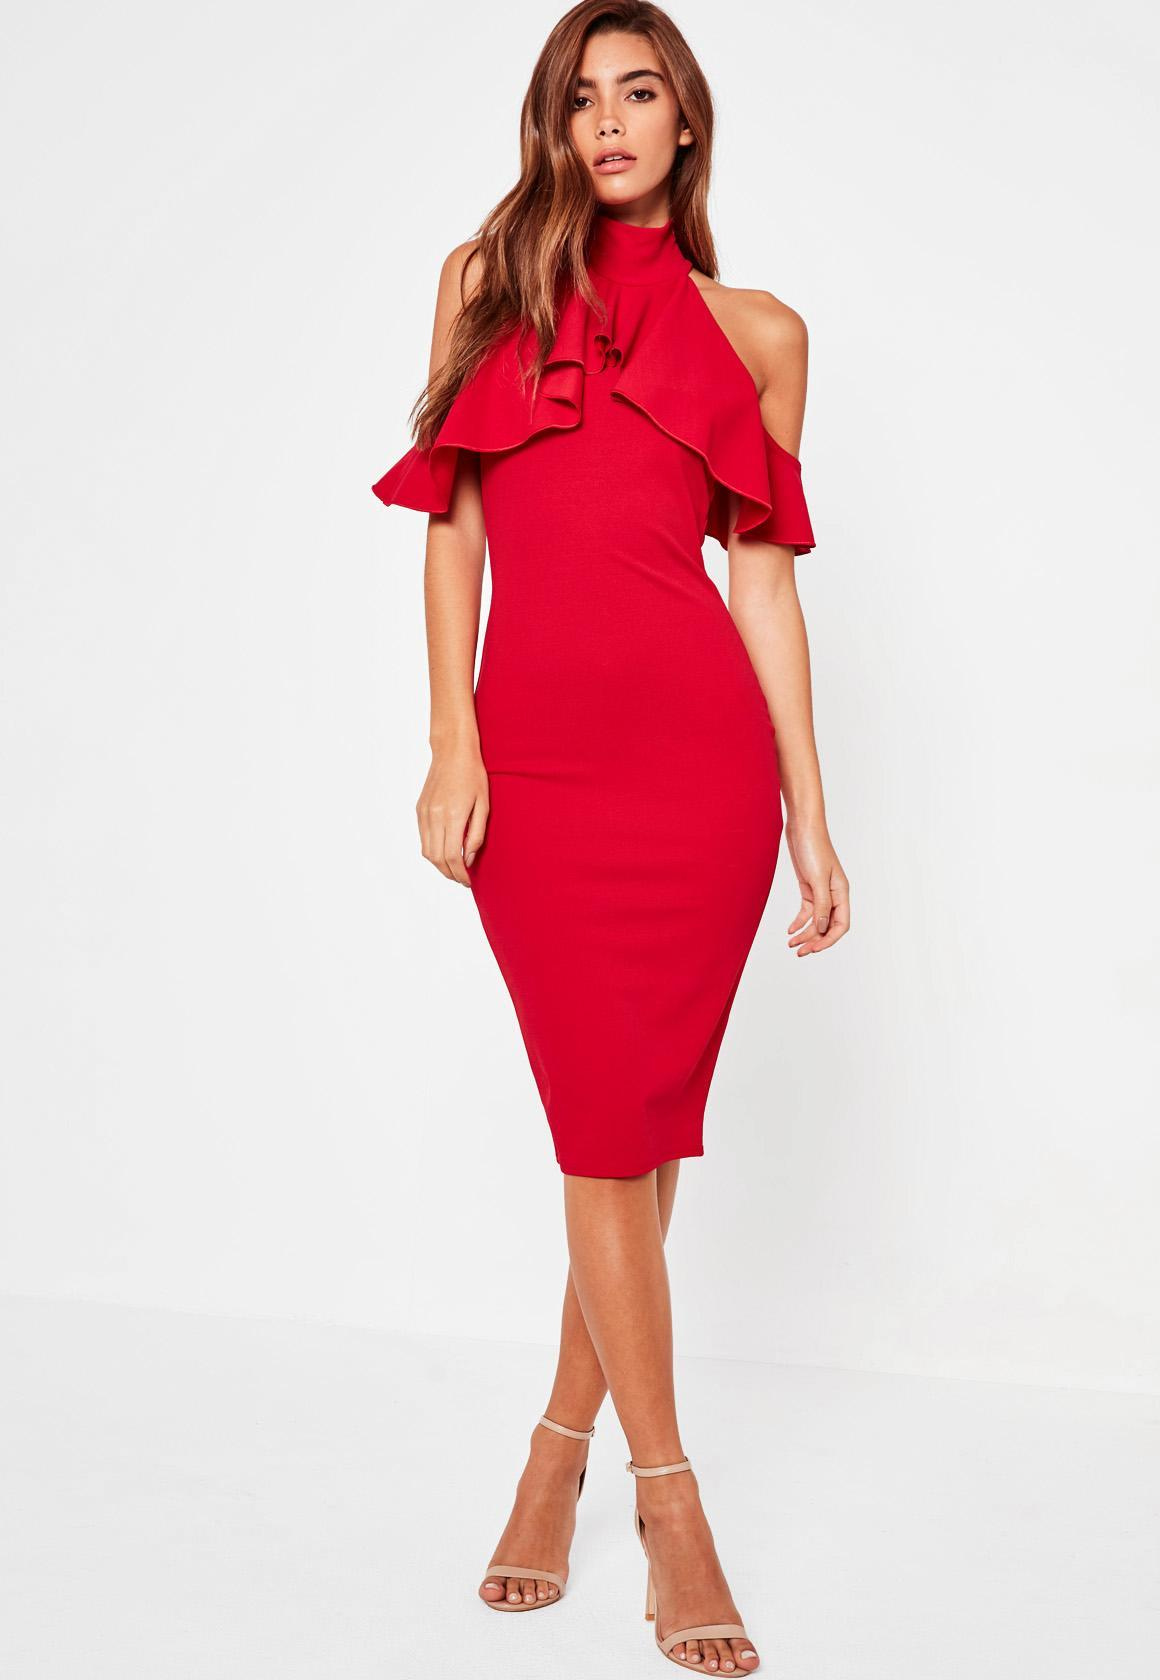 Robe rouge pour mariage